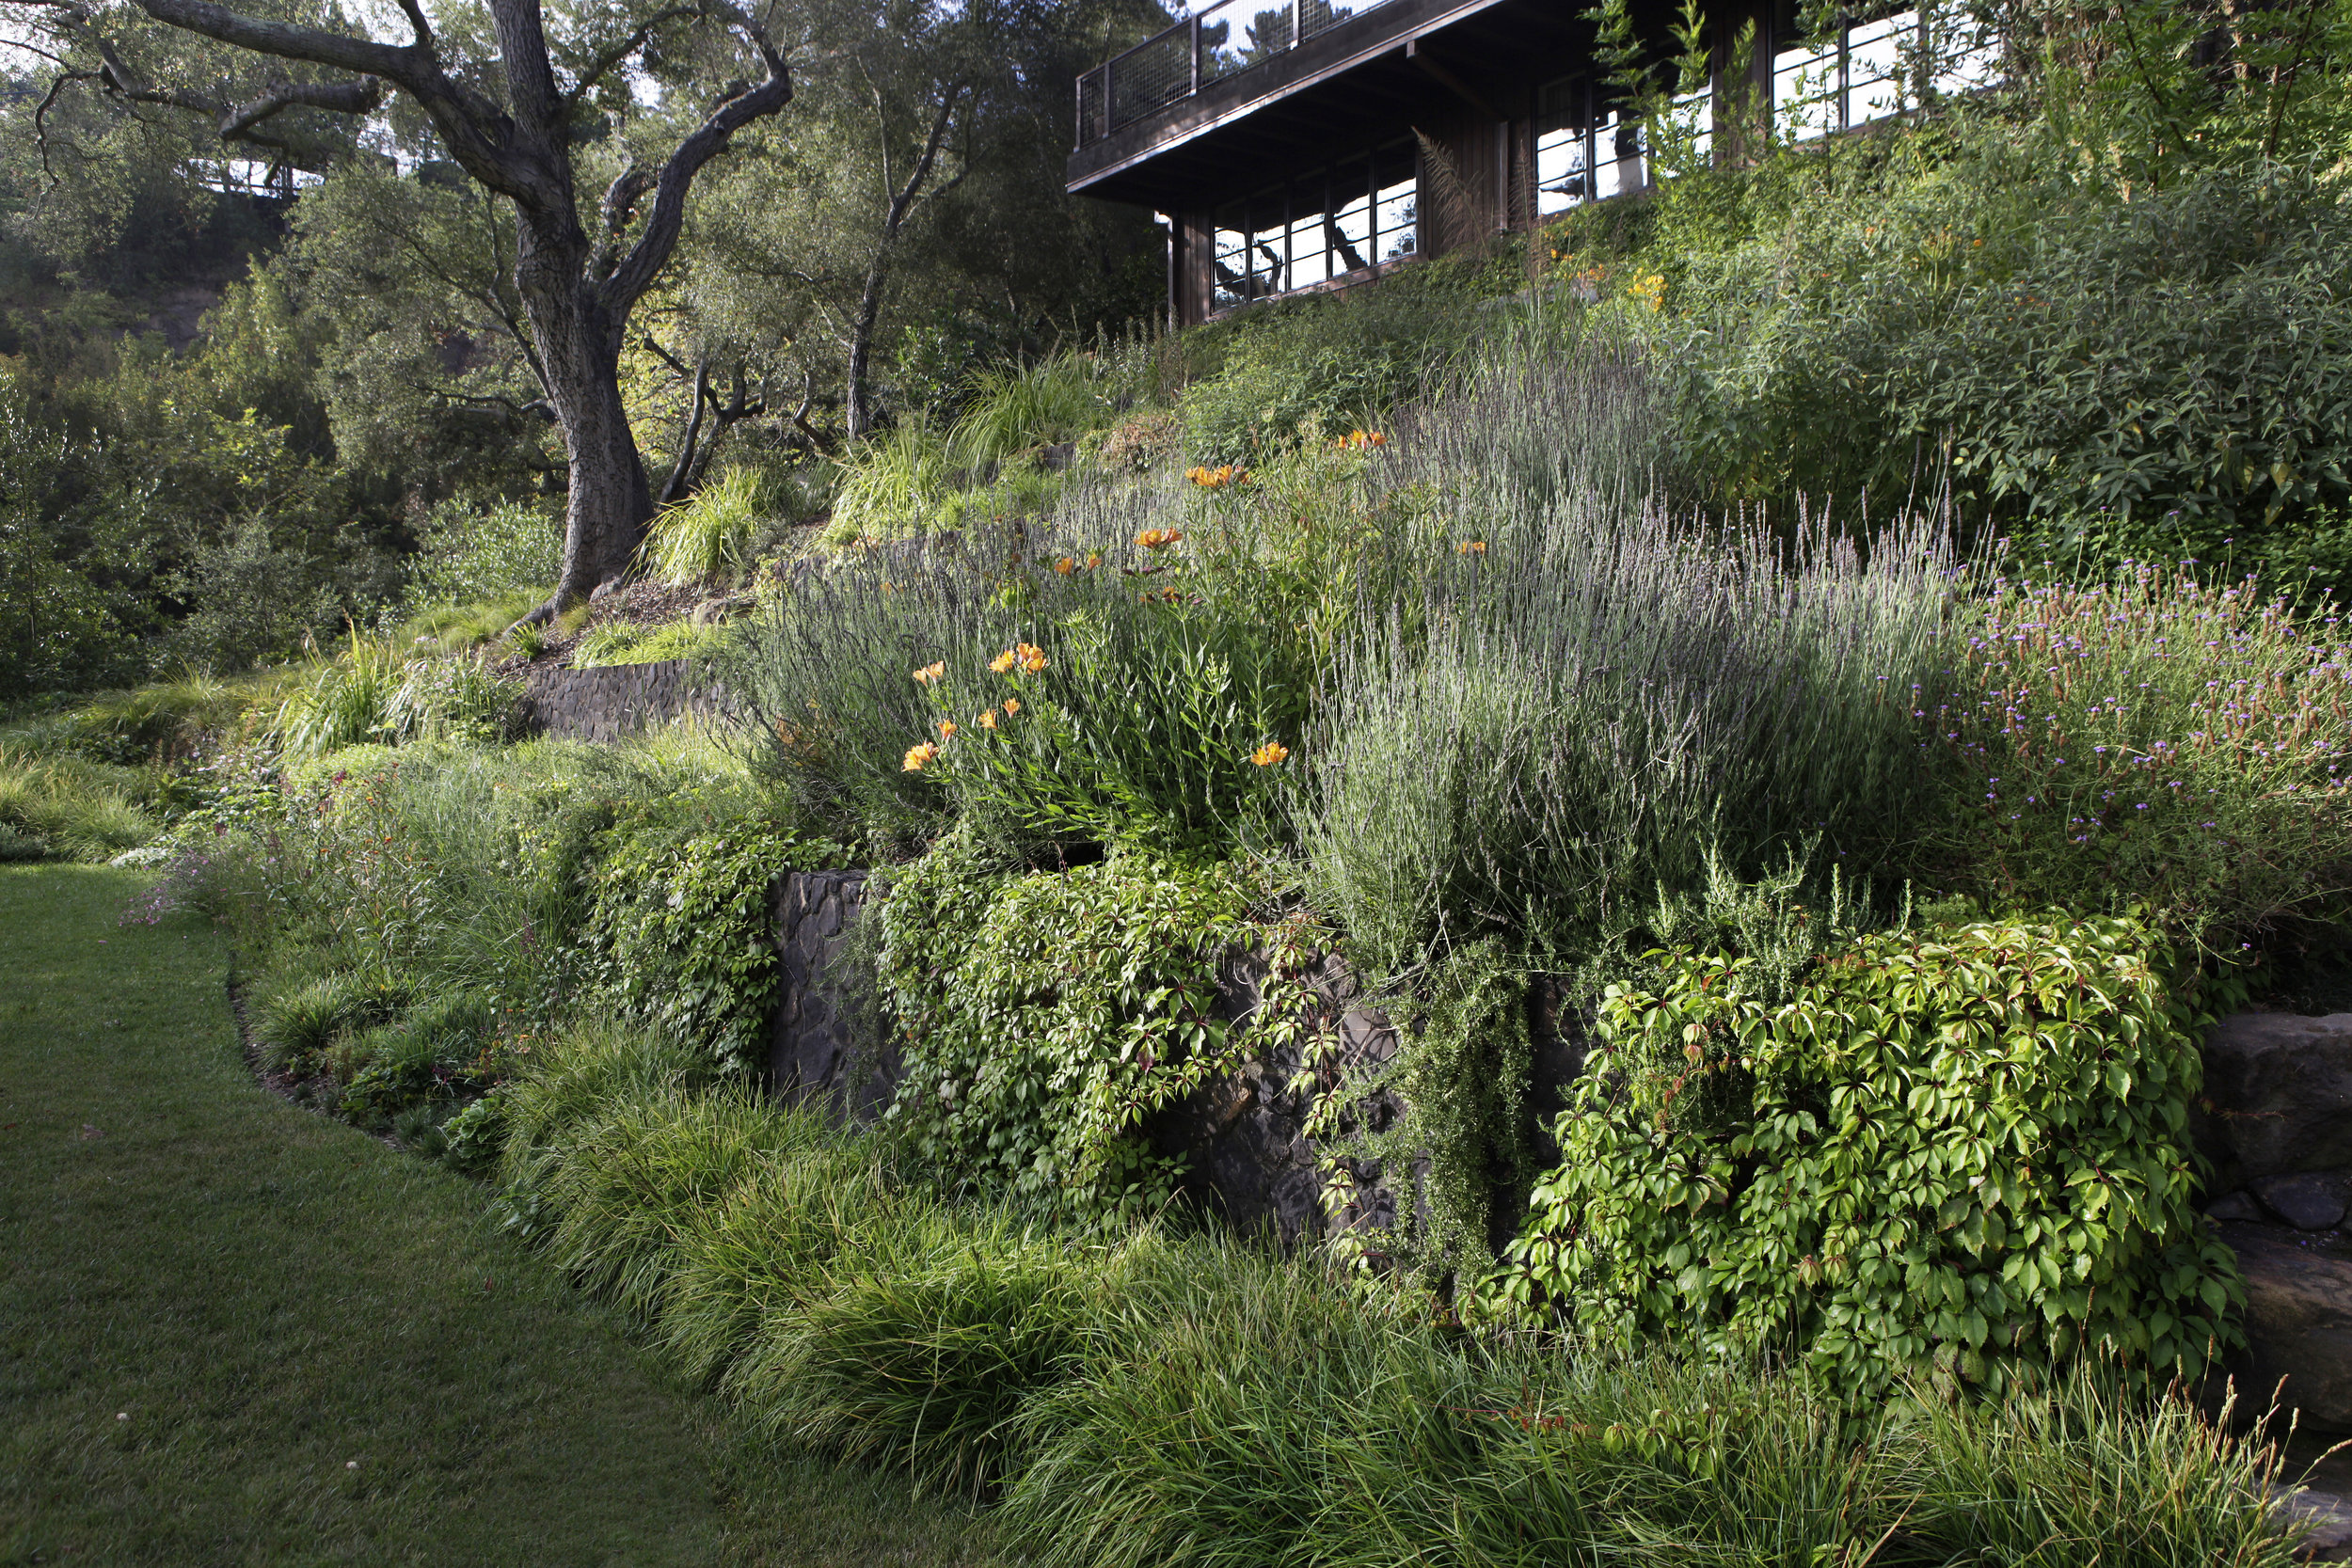 Hillside backyard garden with lavendar and grasses - Topanga Canyon - Los Angeles garden design by Campion Walker Landscapes